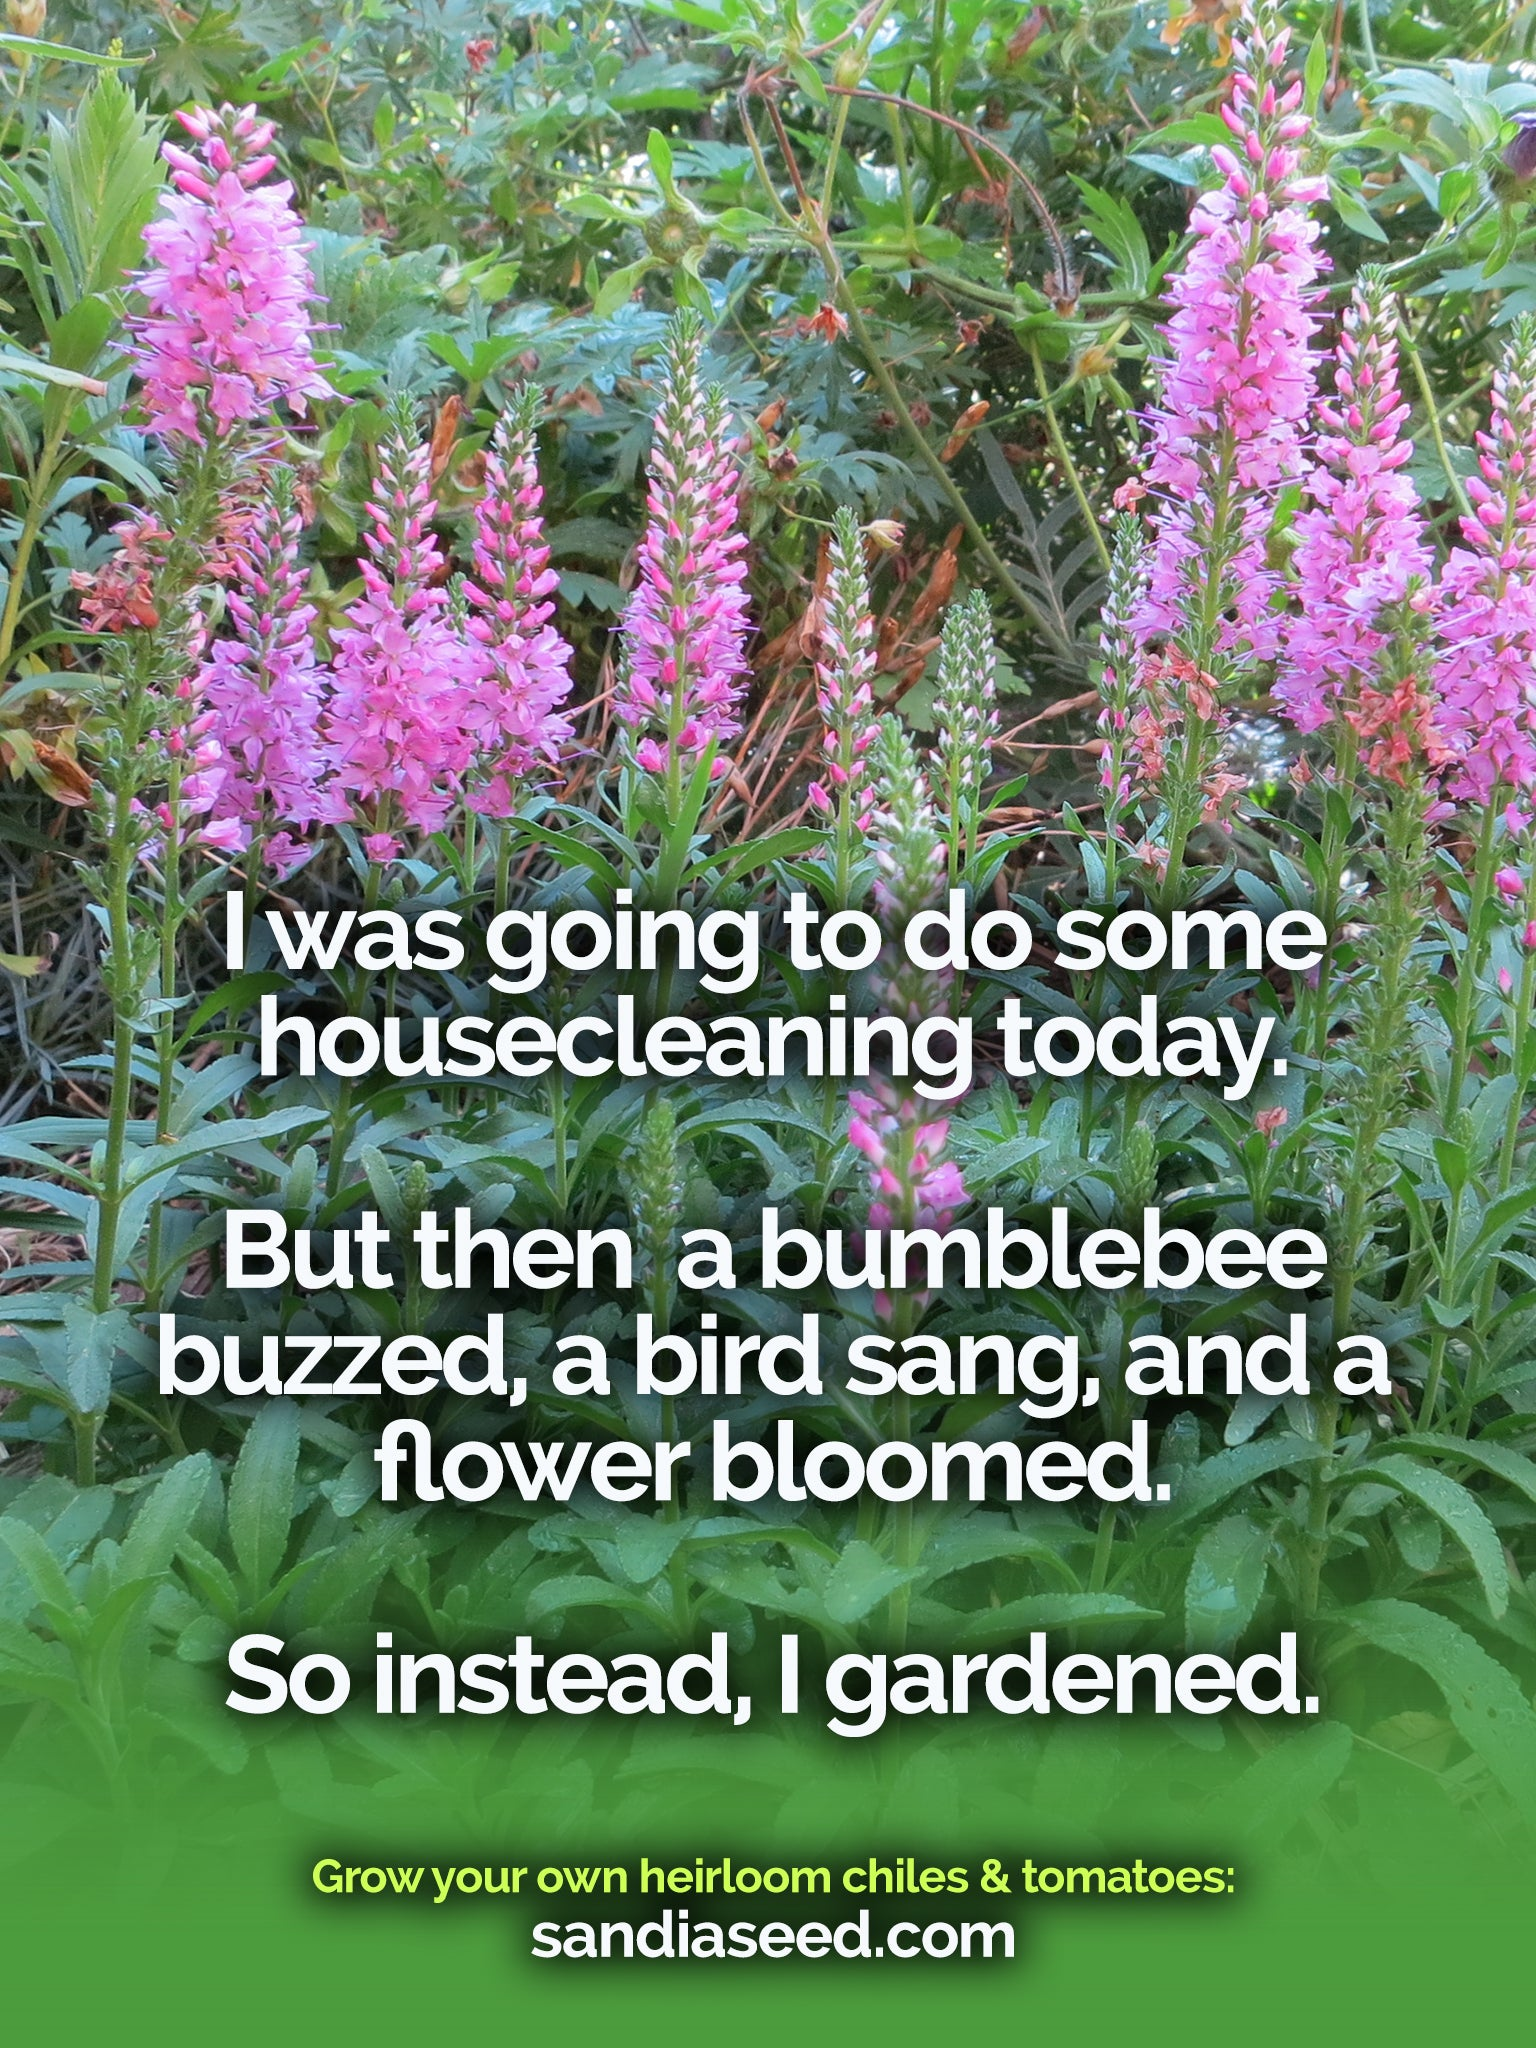 I was going to do some housecleaning today, but then a bumblebee buzzed, a bird sang, and a flower bloomed. So instead, I gardened. - Garden Meme